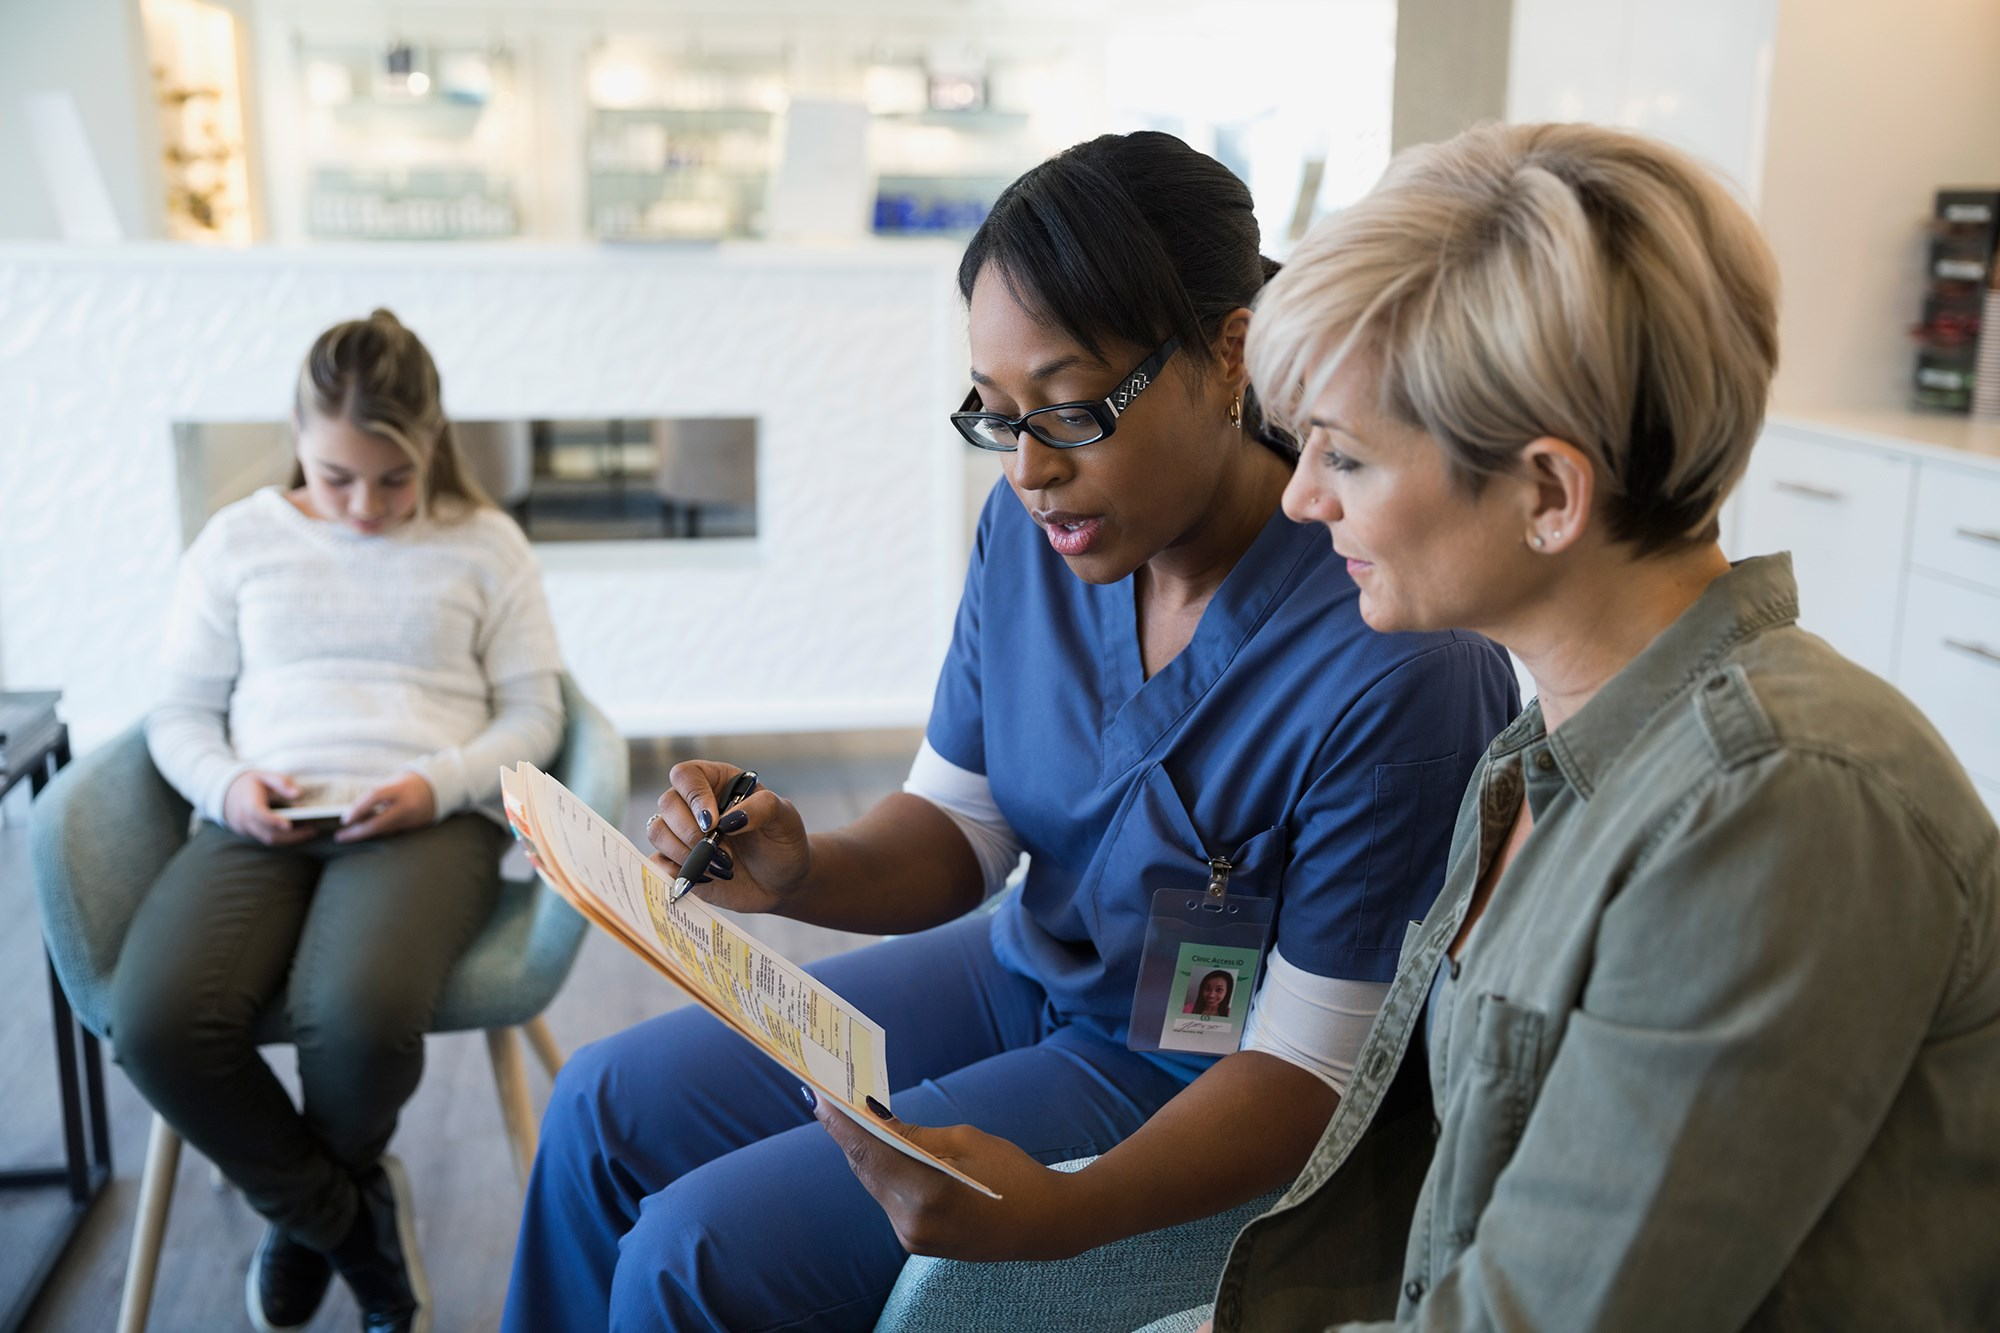 Nurse-Led Program Improves Health, Financial Outcomes in Outpatient Chemotherapy